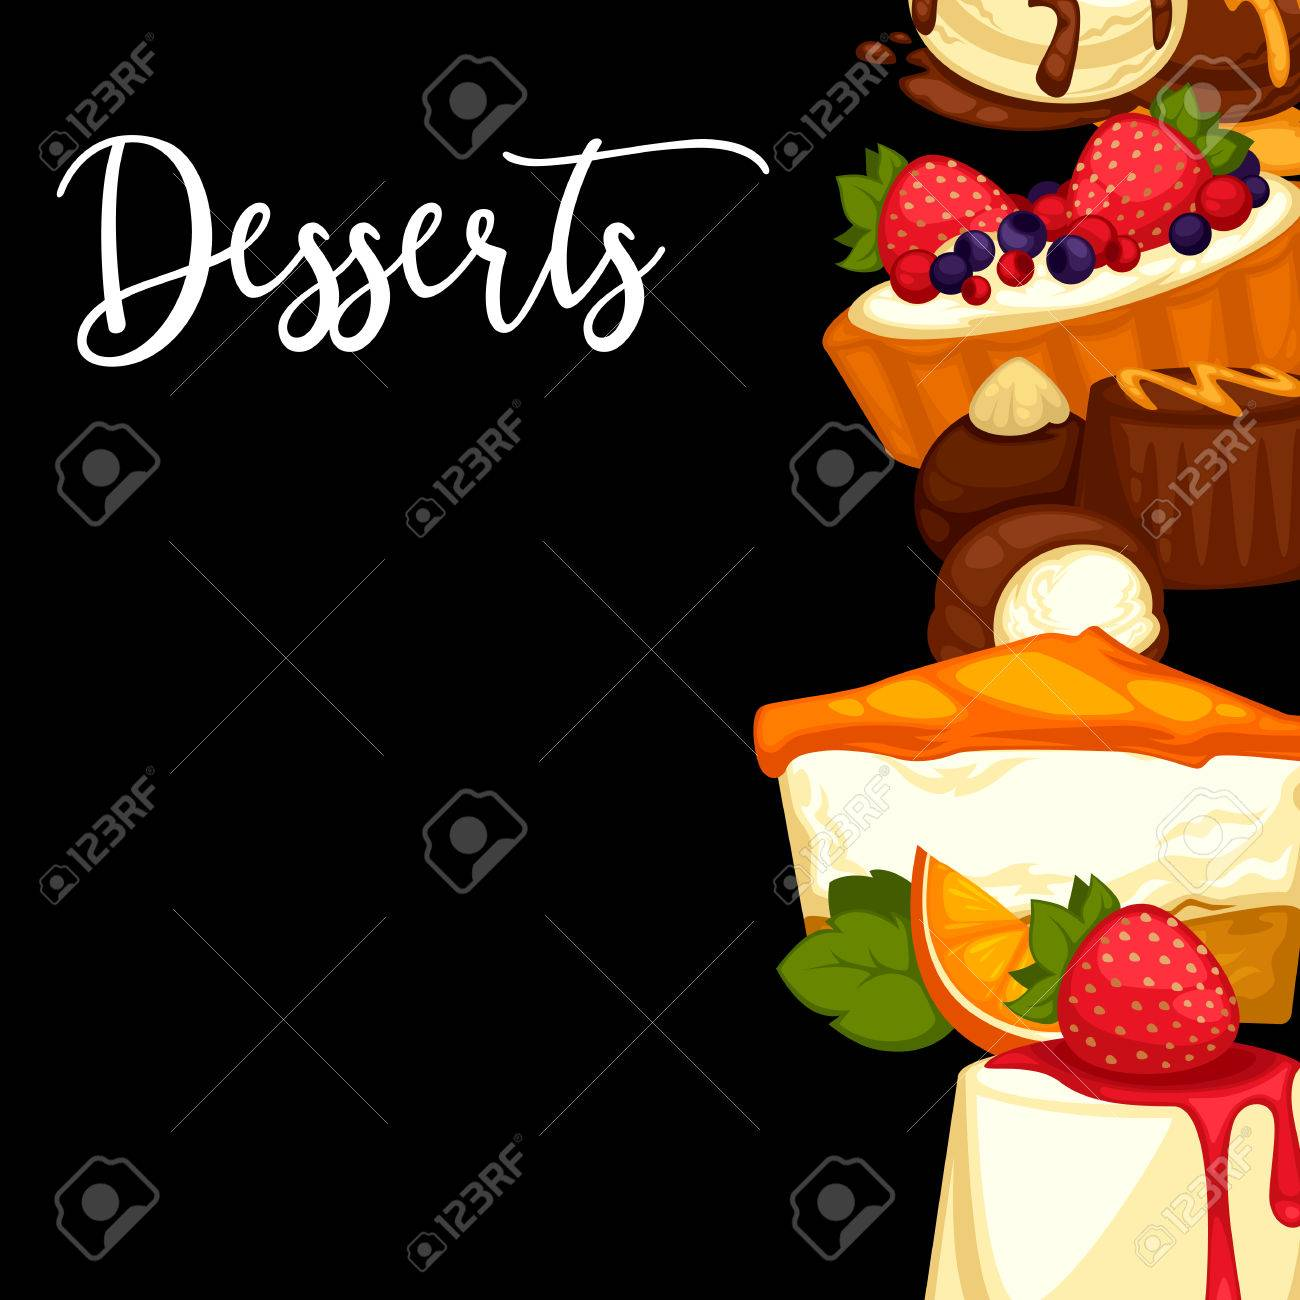 delicious sweet dessert menu template for cafe or restaurant